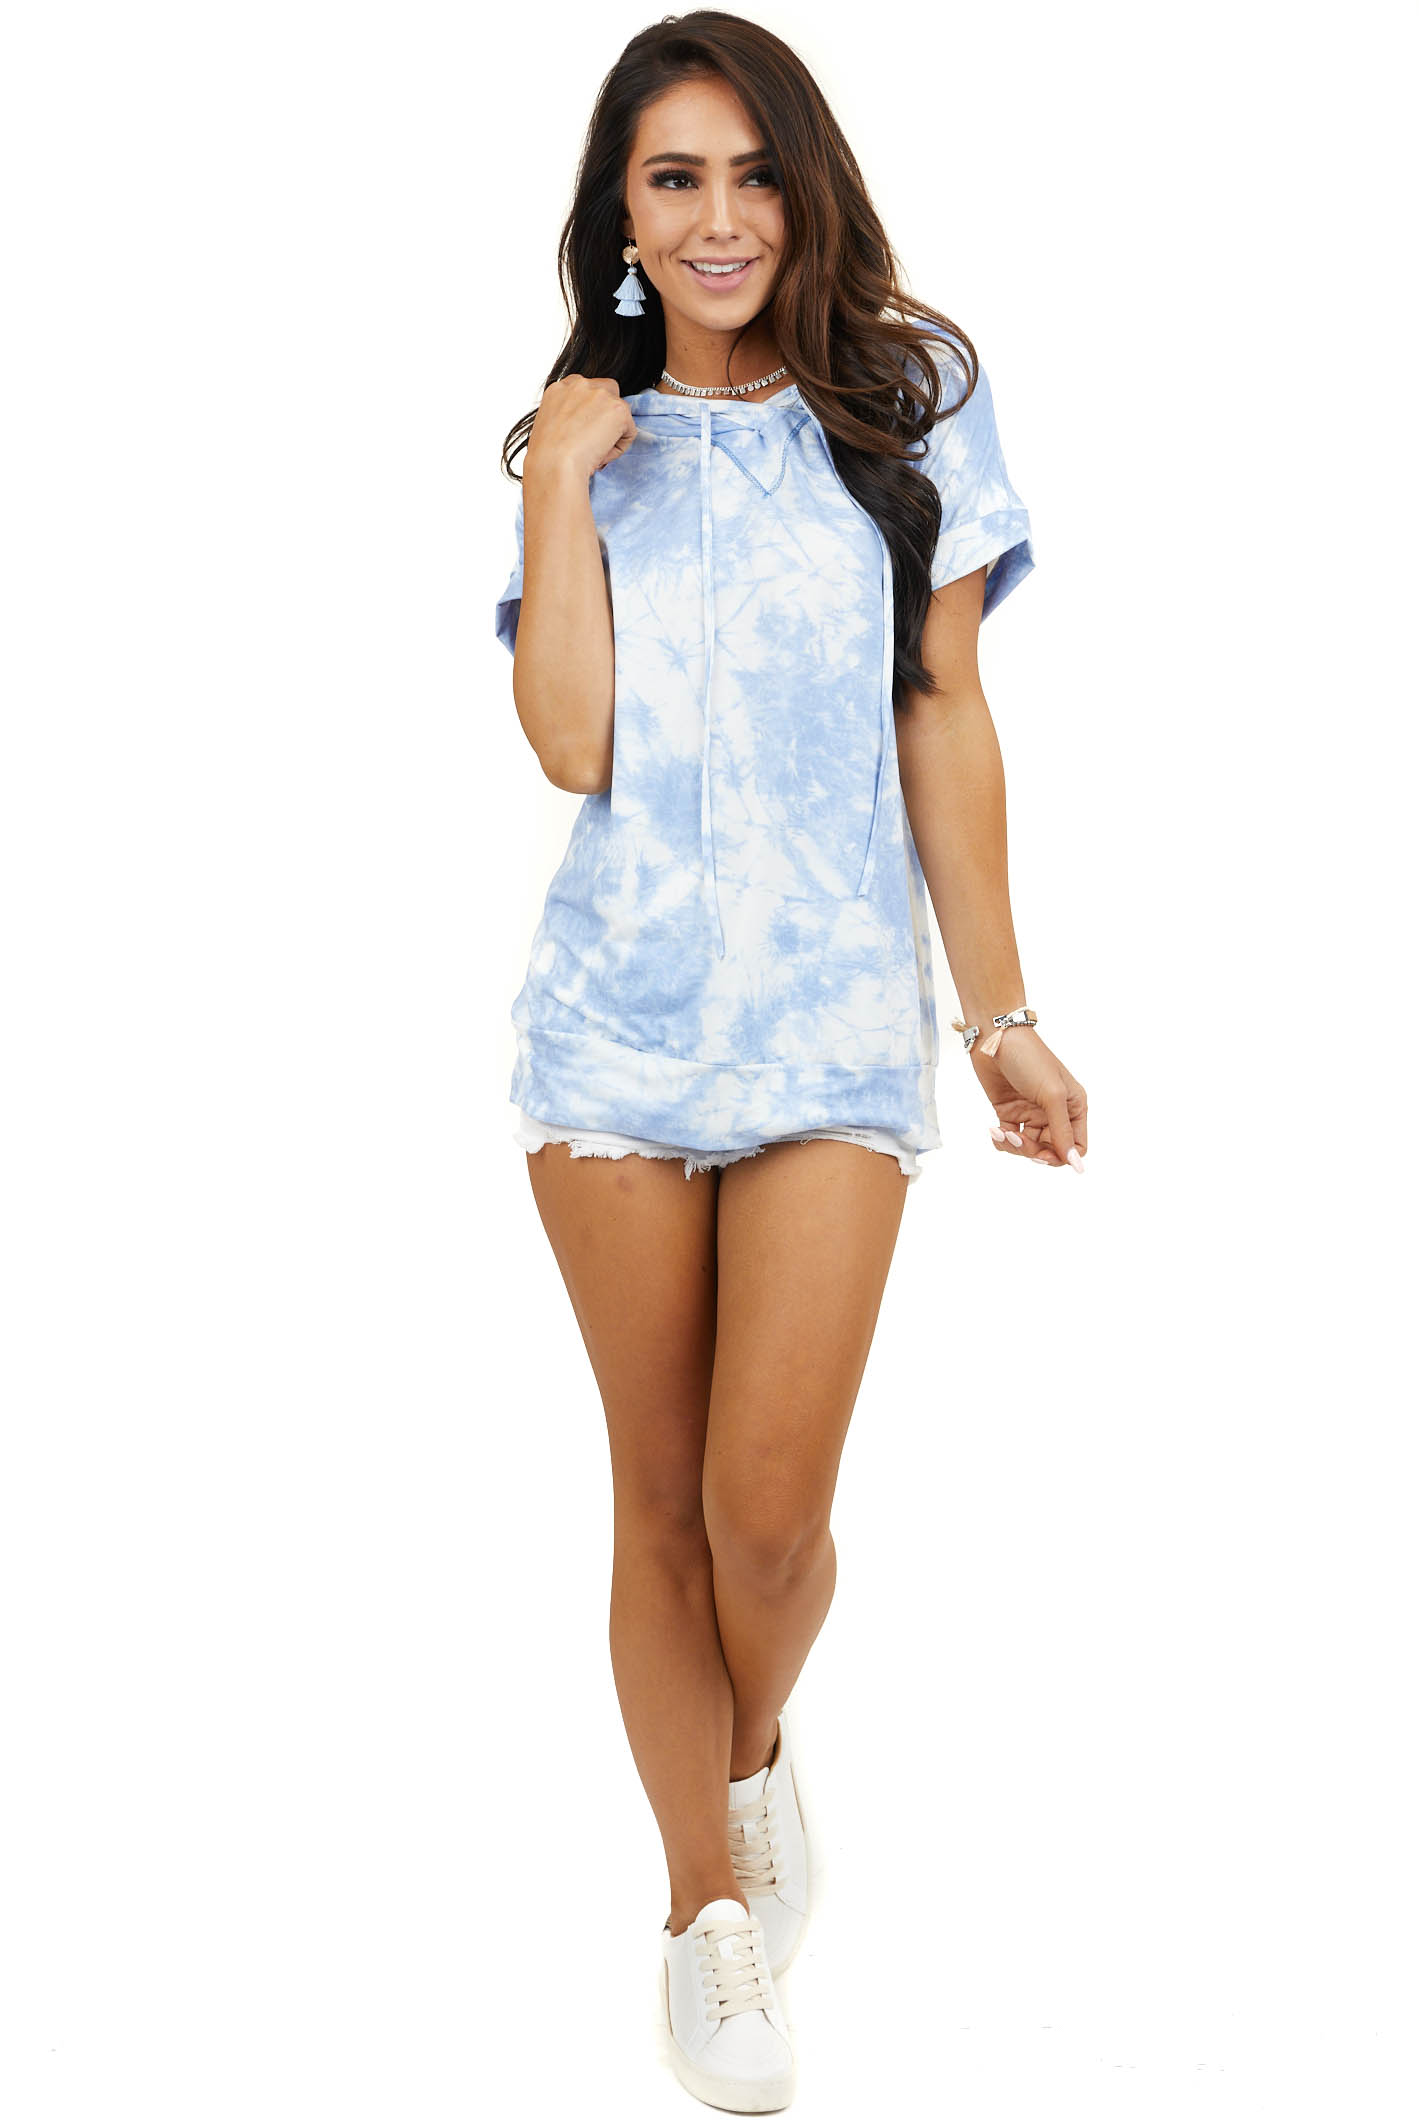 Blue and Ivory Tie Dye Short Sleeve Knit Tee Shirt Hoodie